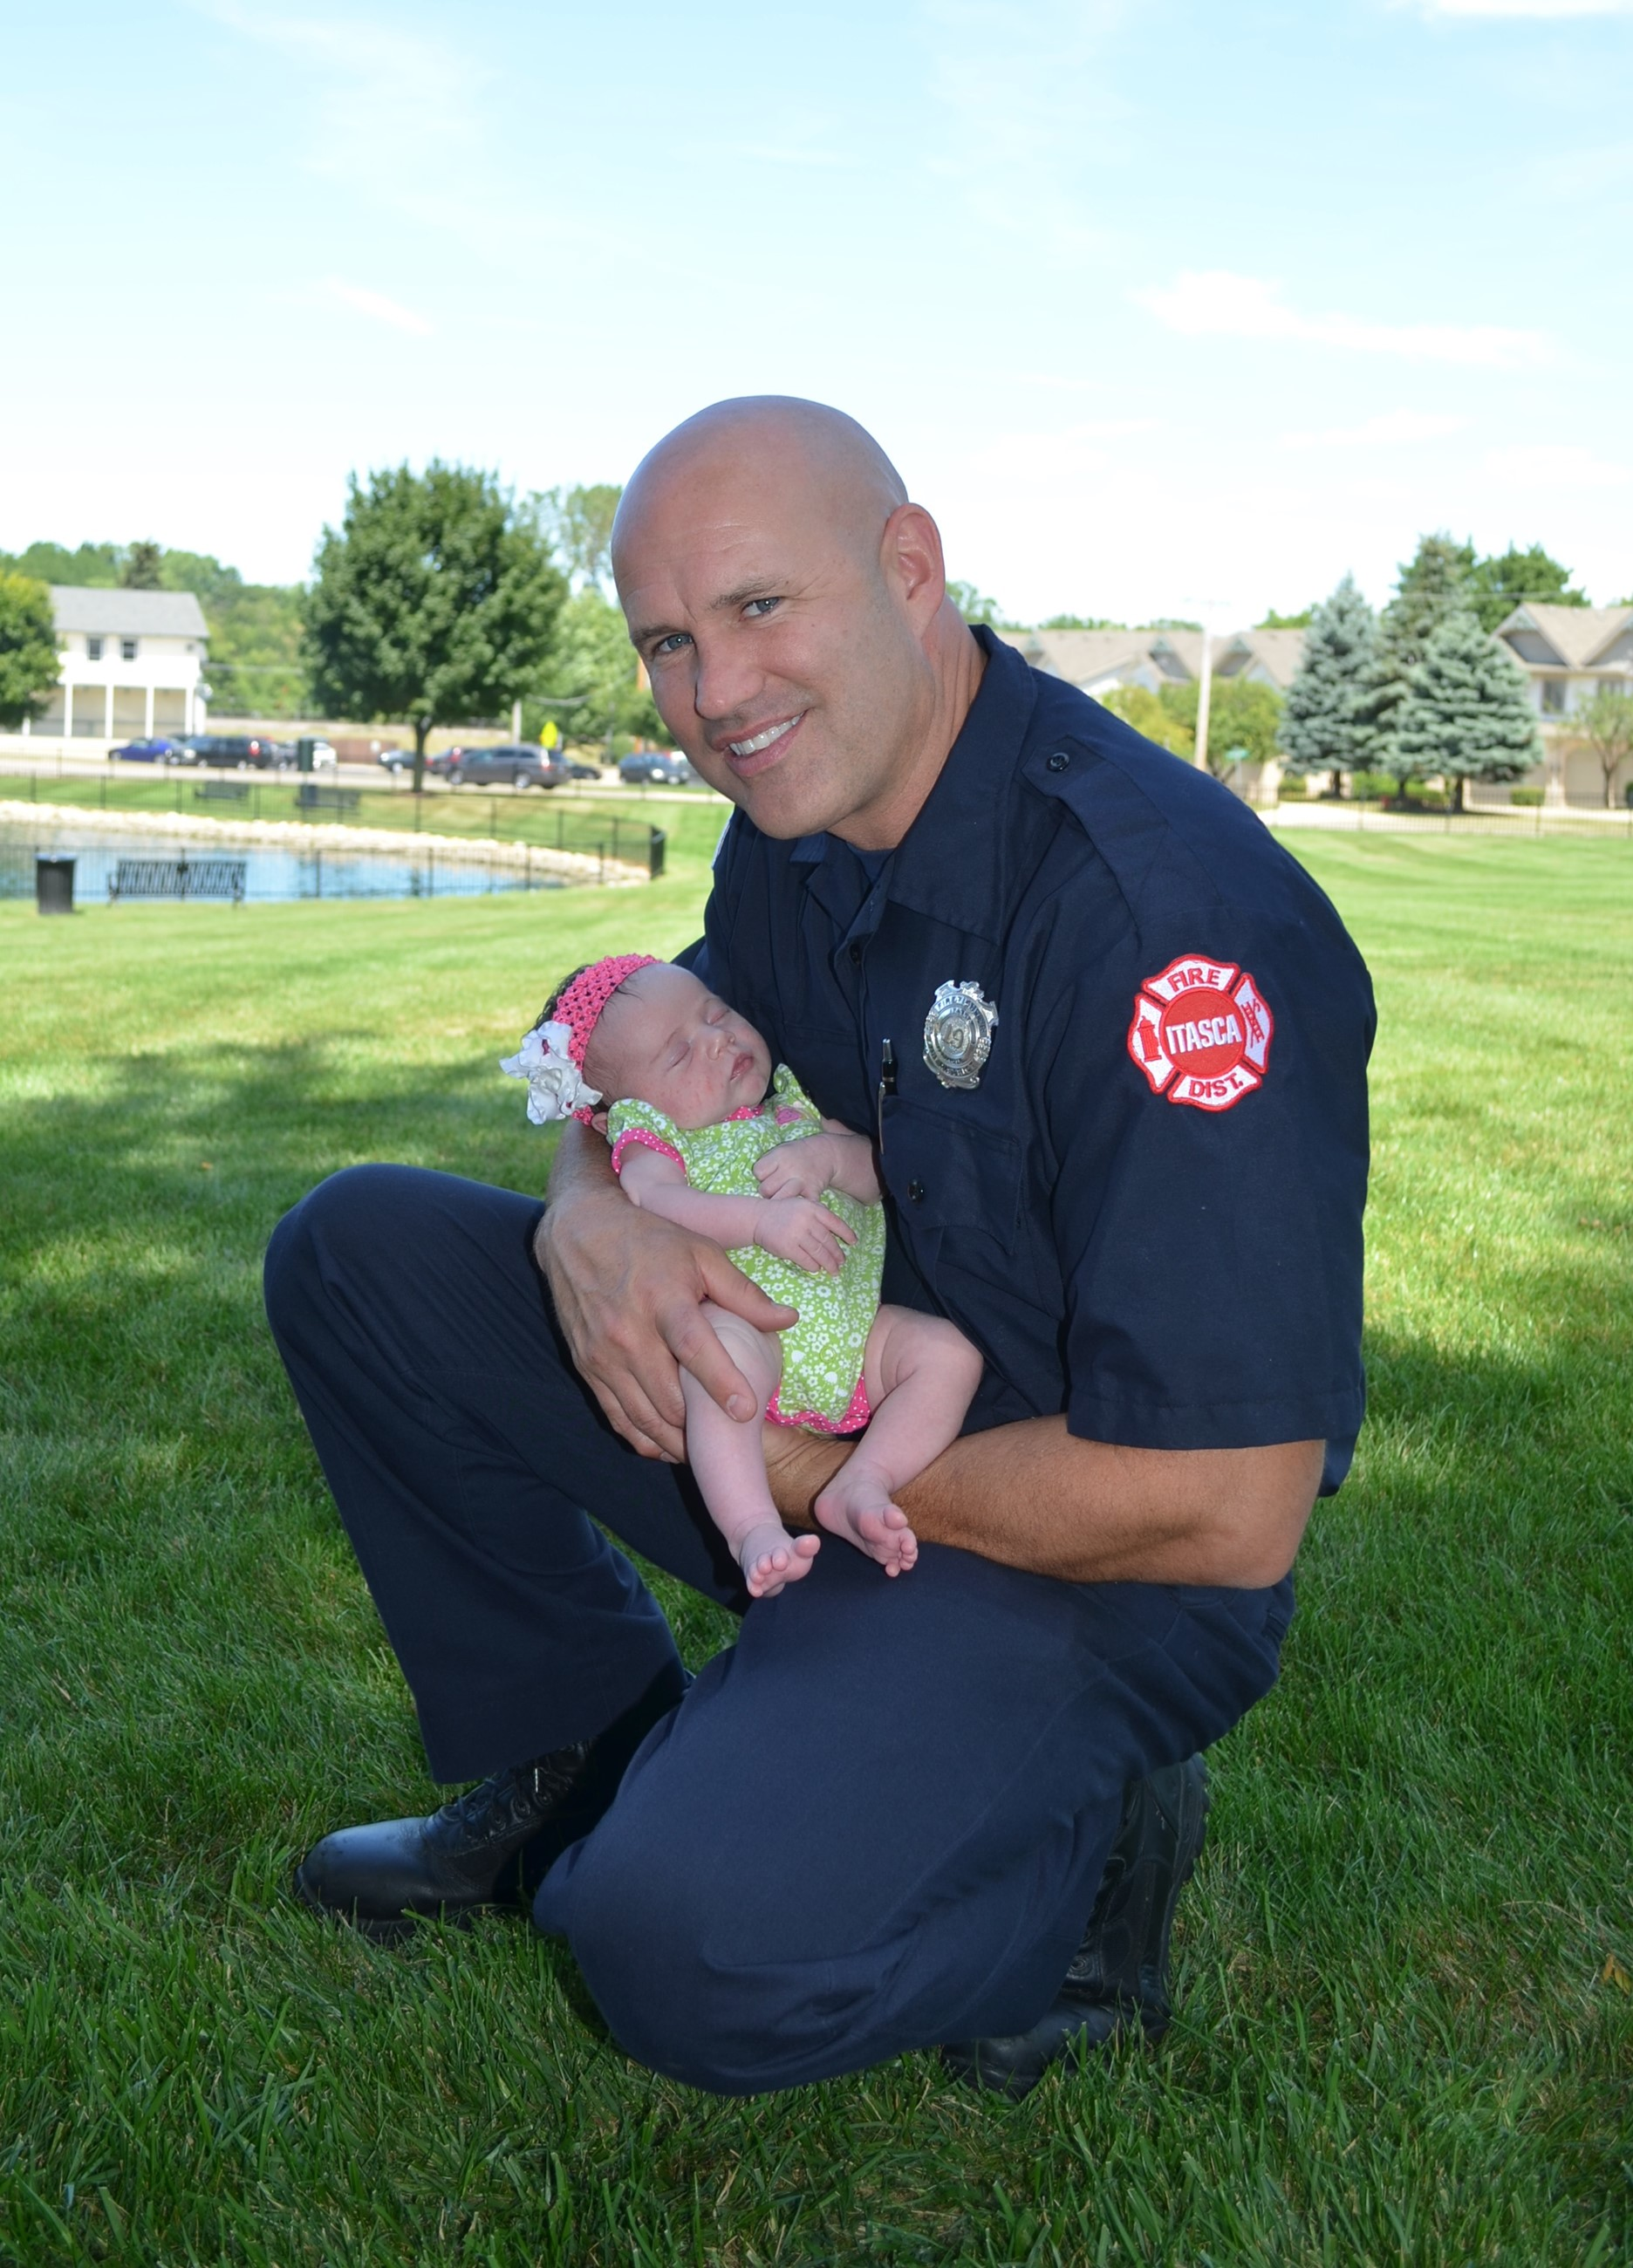 Itasca Pk Dist Fireman with baby.JPG